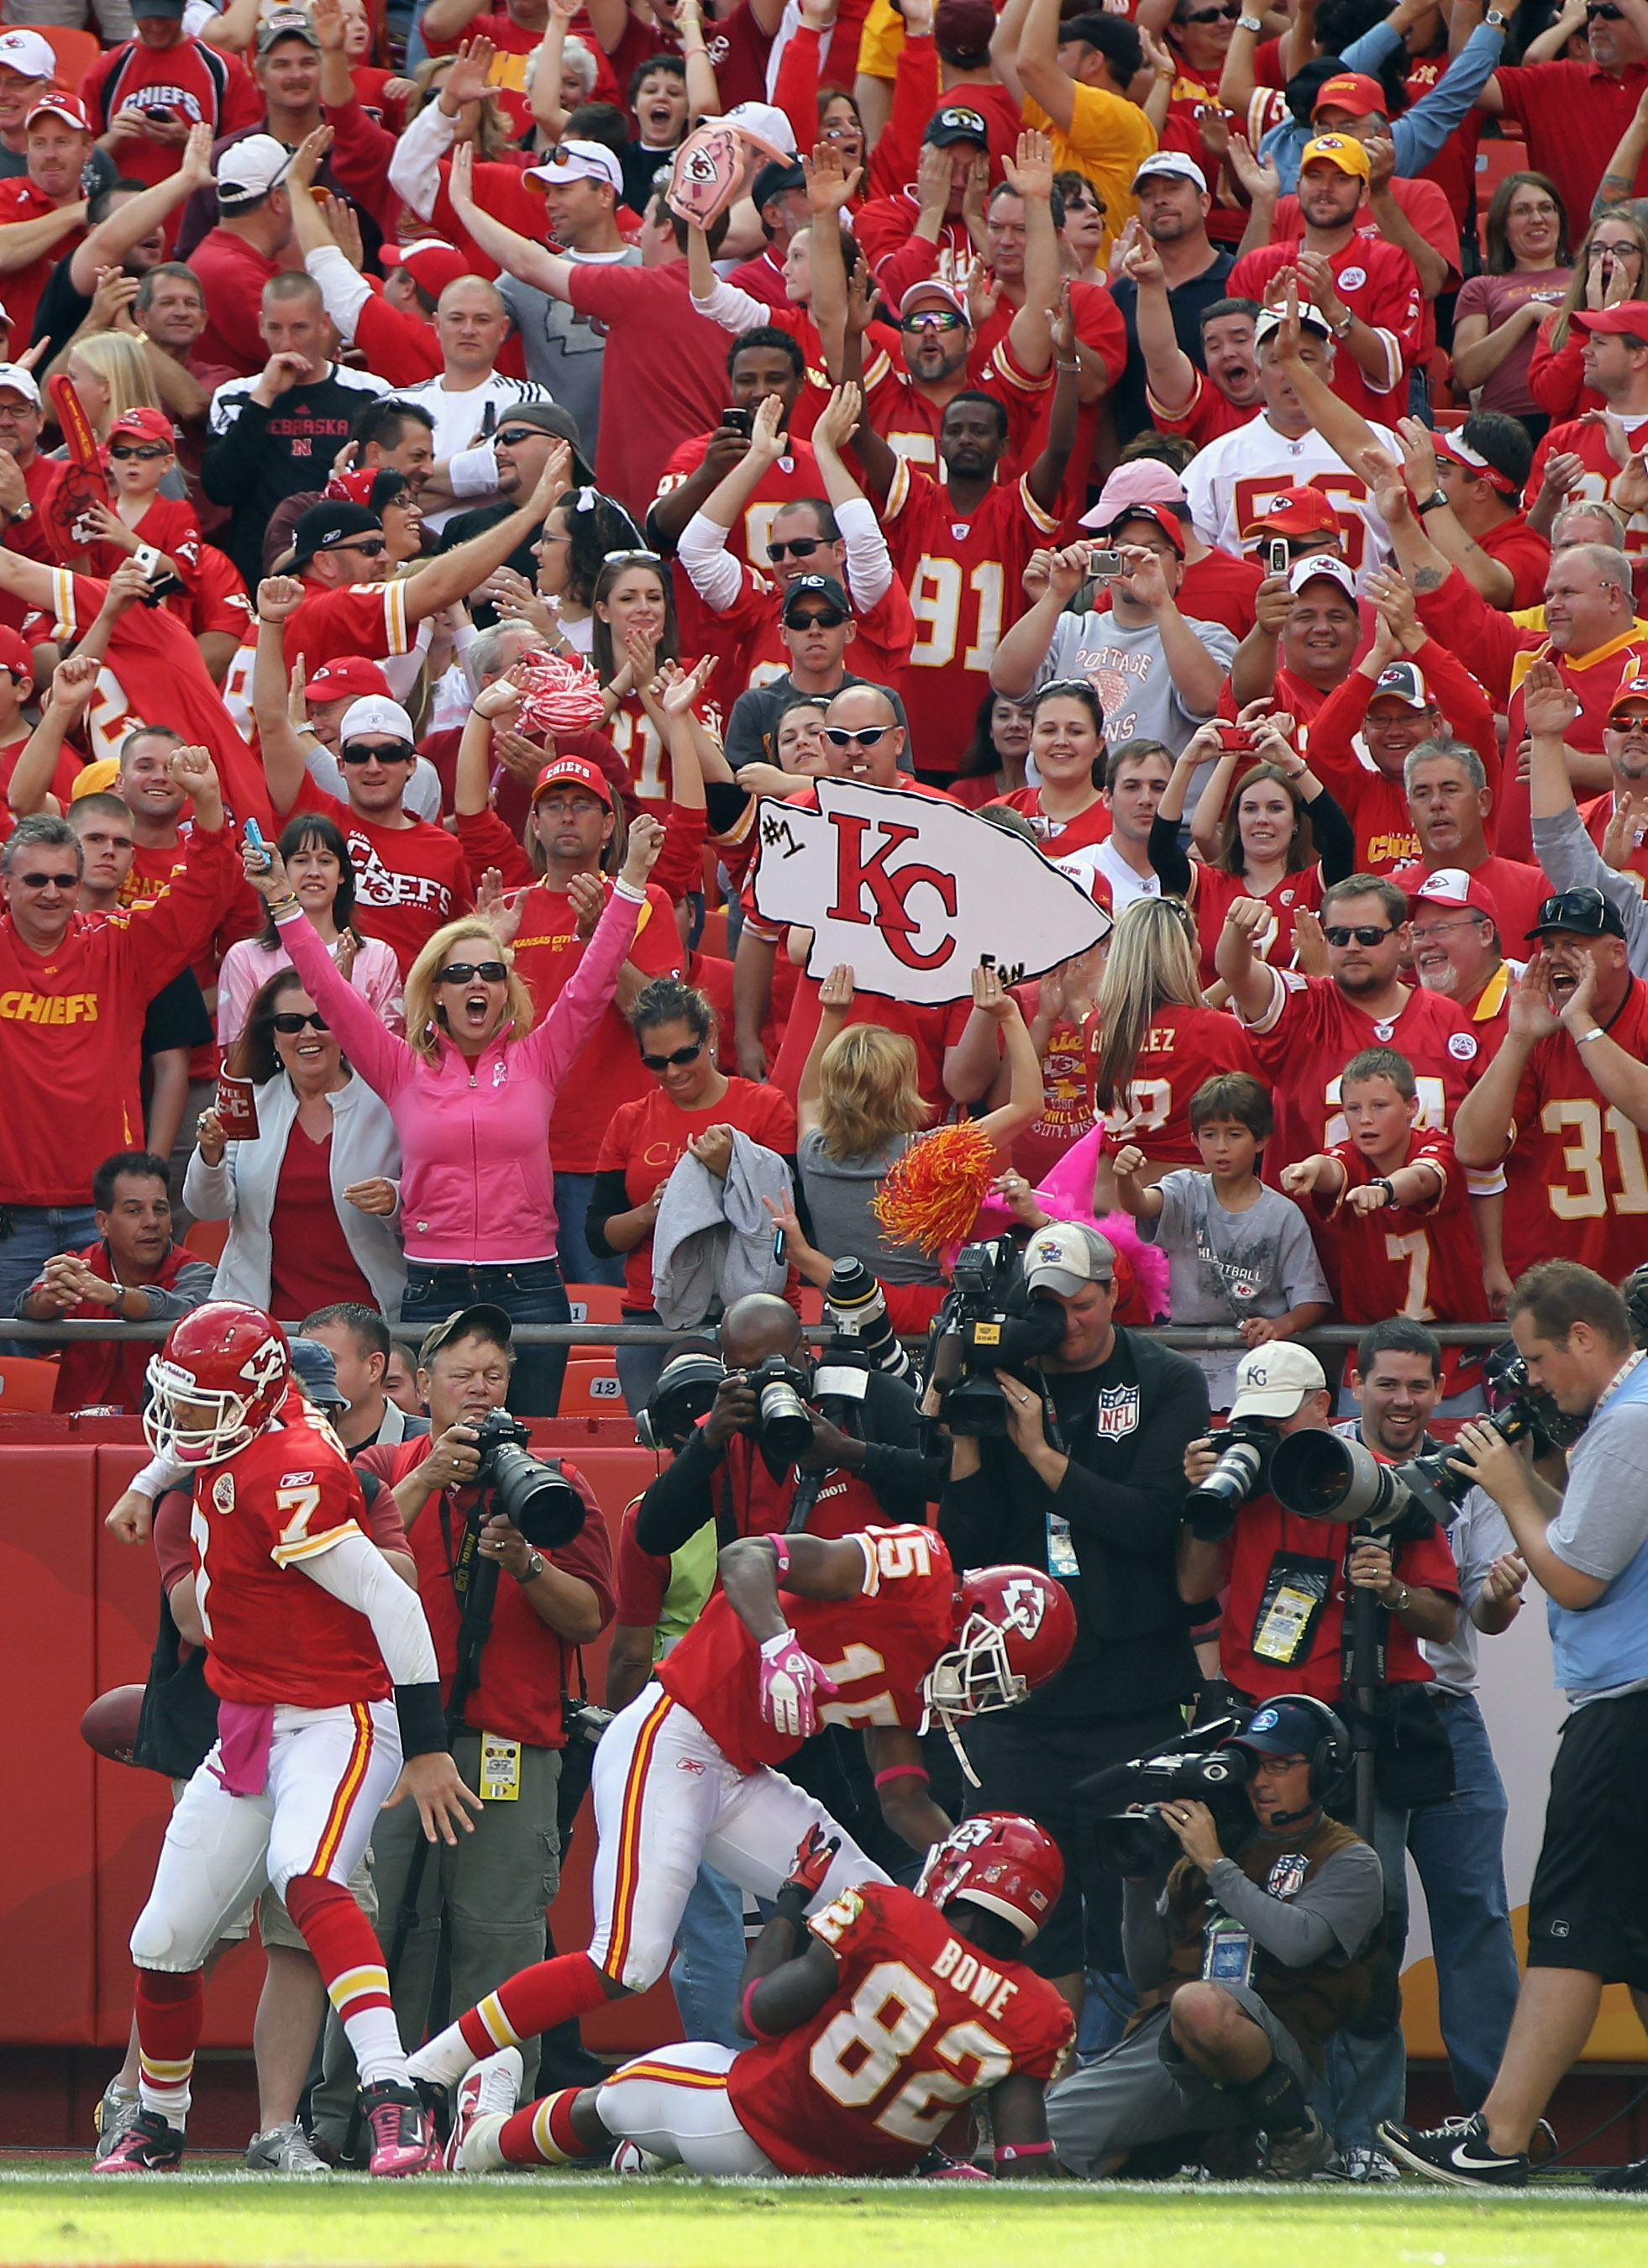 KANSAS CITY, MO - OCTOBER 24:  Quarterback Matt Cassel #7 of the Kansas City Chiefs celebrates after passing to Dwayne Bowe #82 for a touchdown  during the game against the Jacksonville Jaguars on October 24, 2010 at Arrowhead Stadium in Kansas City, Miss